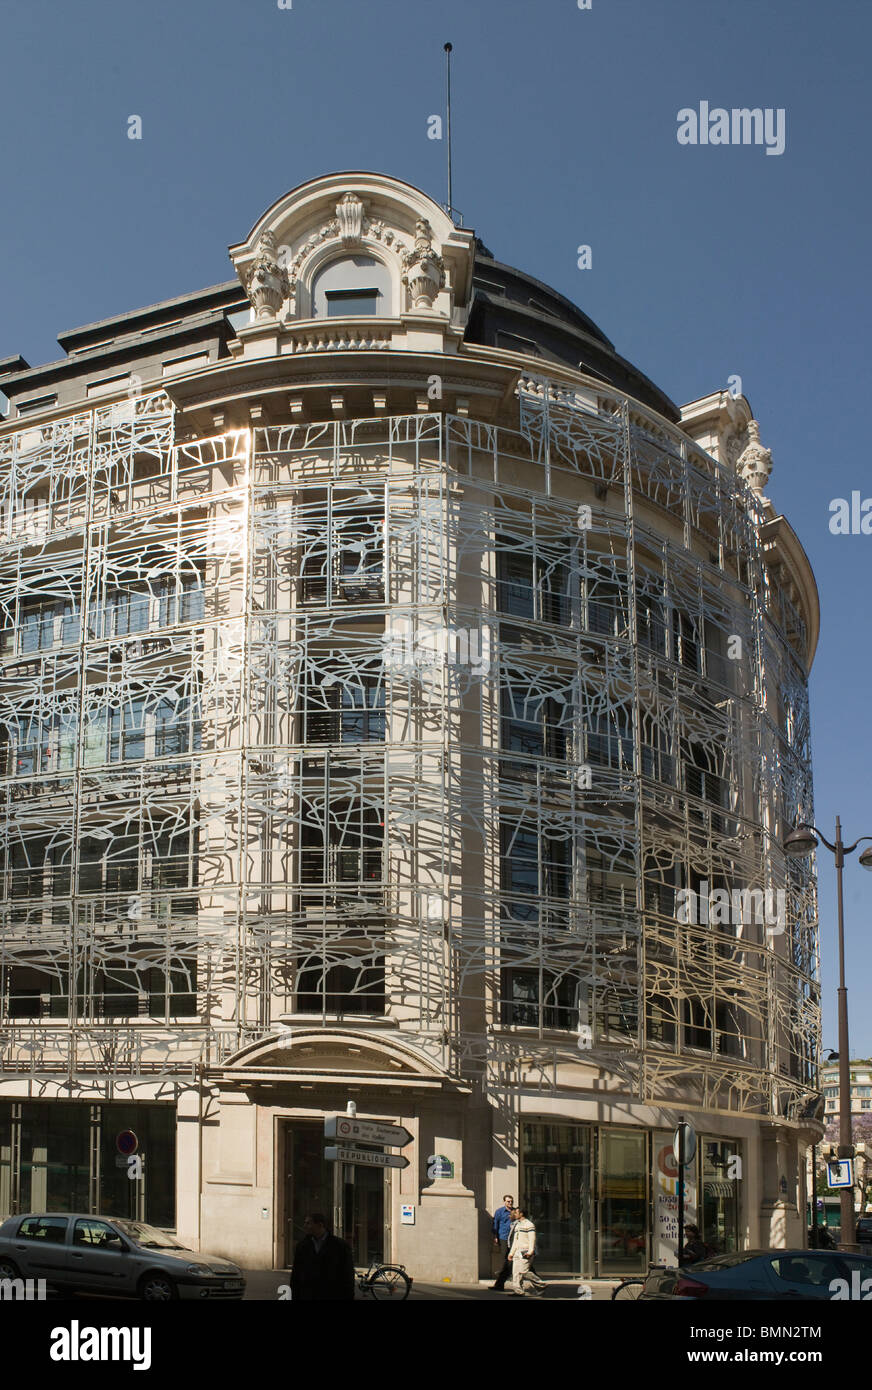 Ministry of Culture, Paris, France. Earlier stone building encased in a filigree metal net that wraps around the - Stock Image